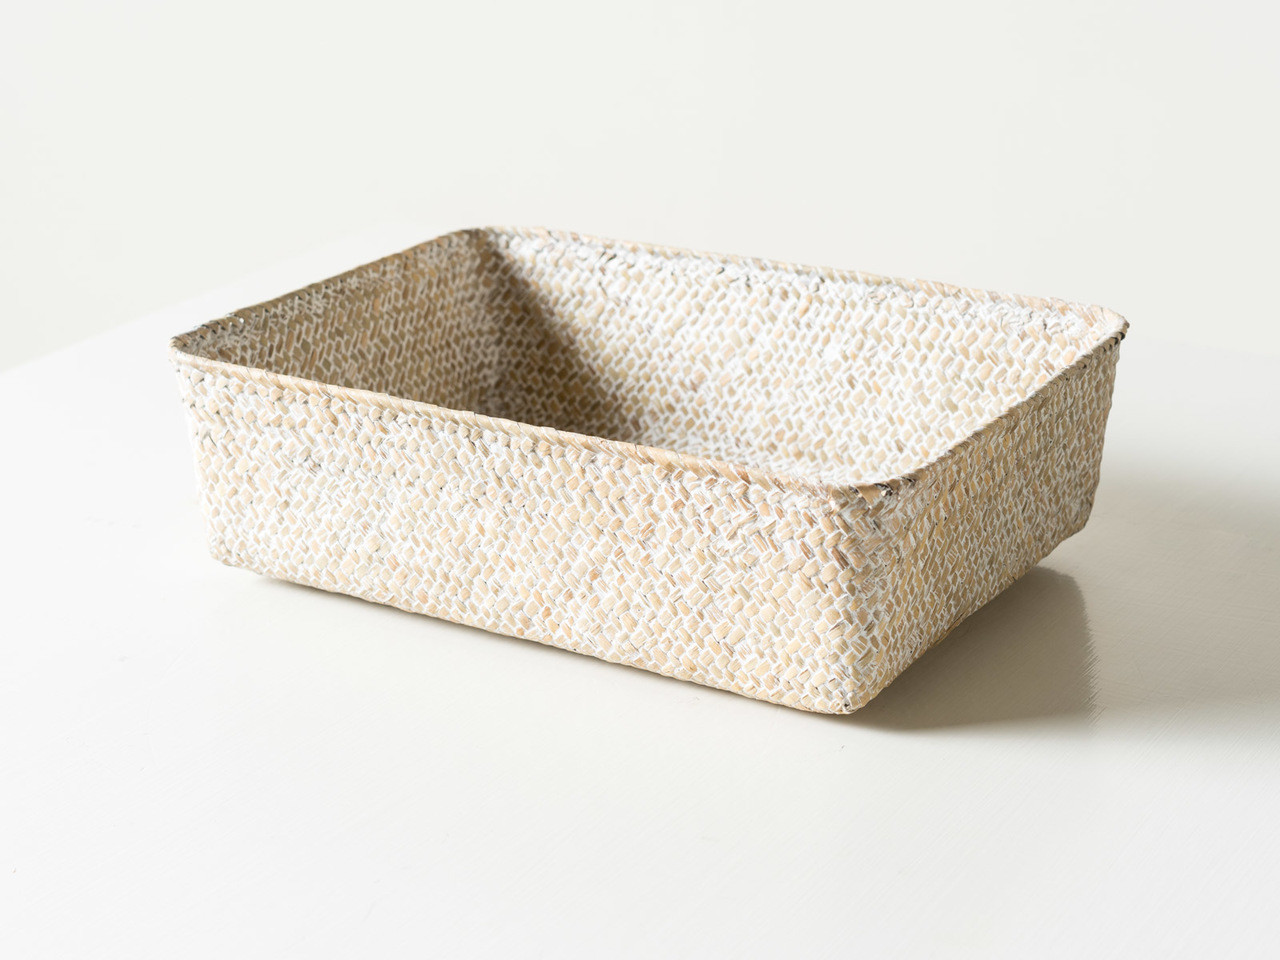 SEAGRASS RECTANGULAR WHITE TRAY - R E V I V A L